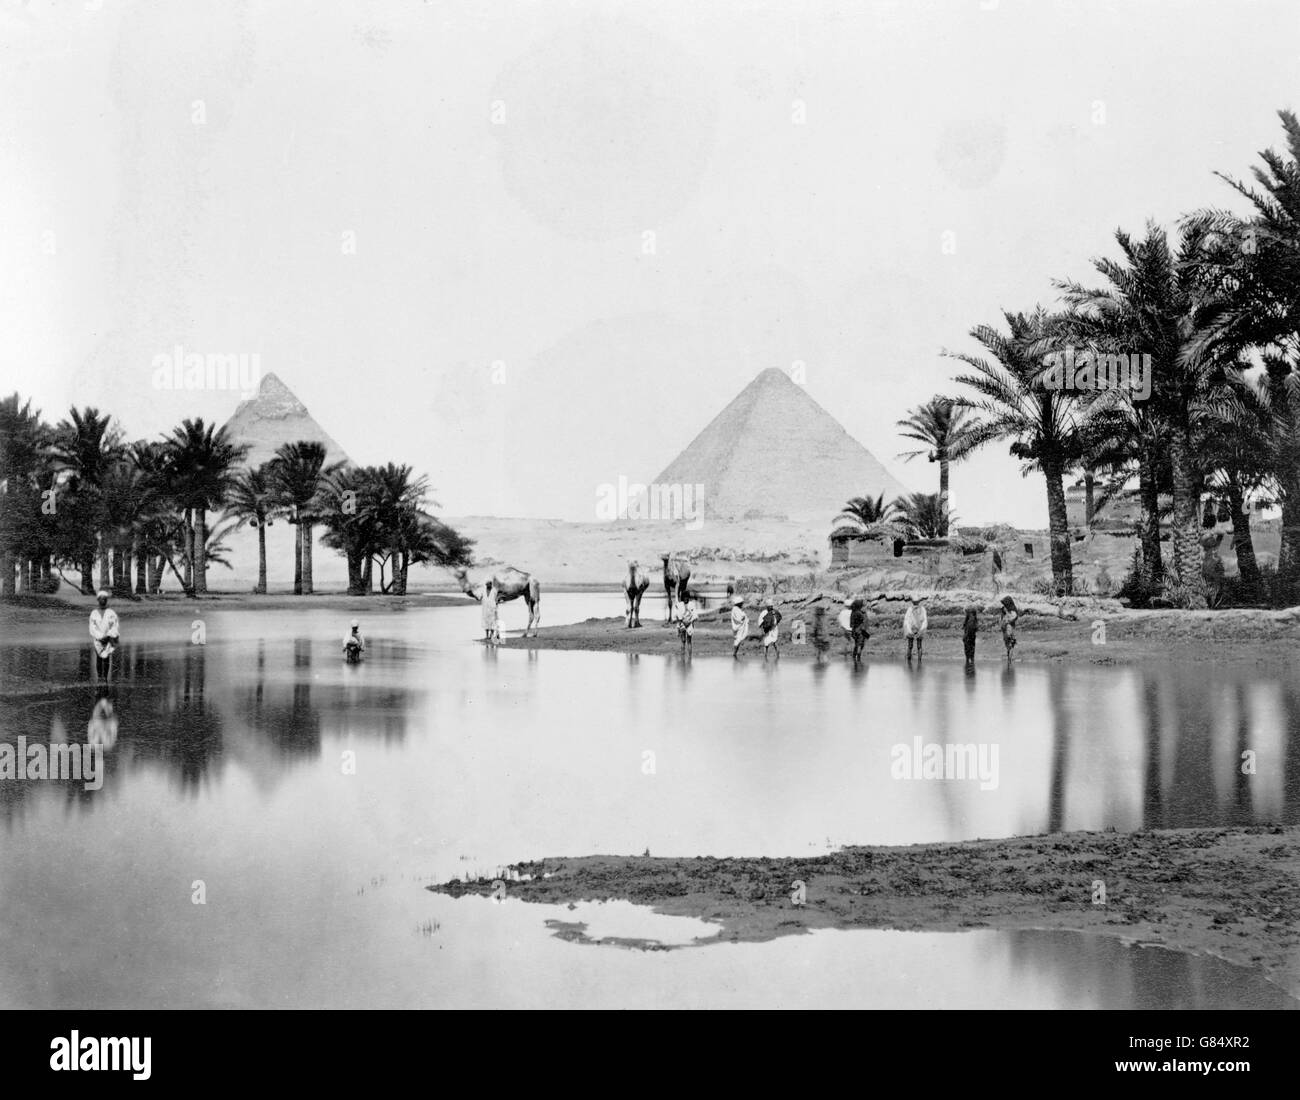 The Pyramids of Giza in the mid to late 19th Century. Photo taken between 1860 and 1890. - Stock Image